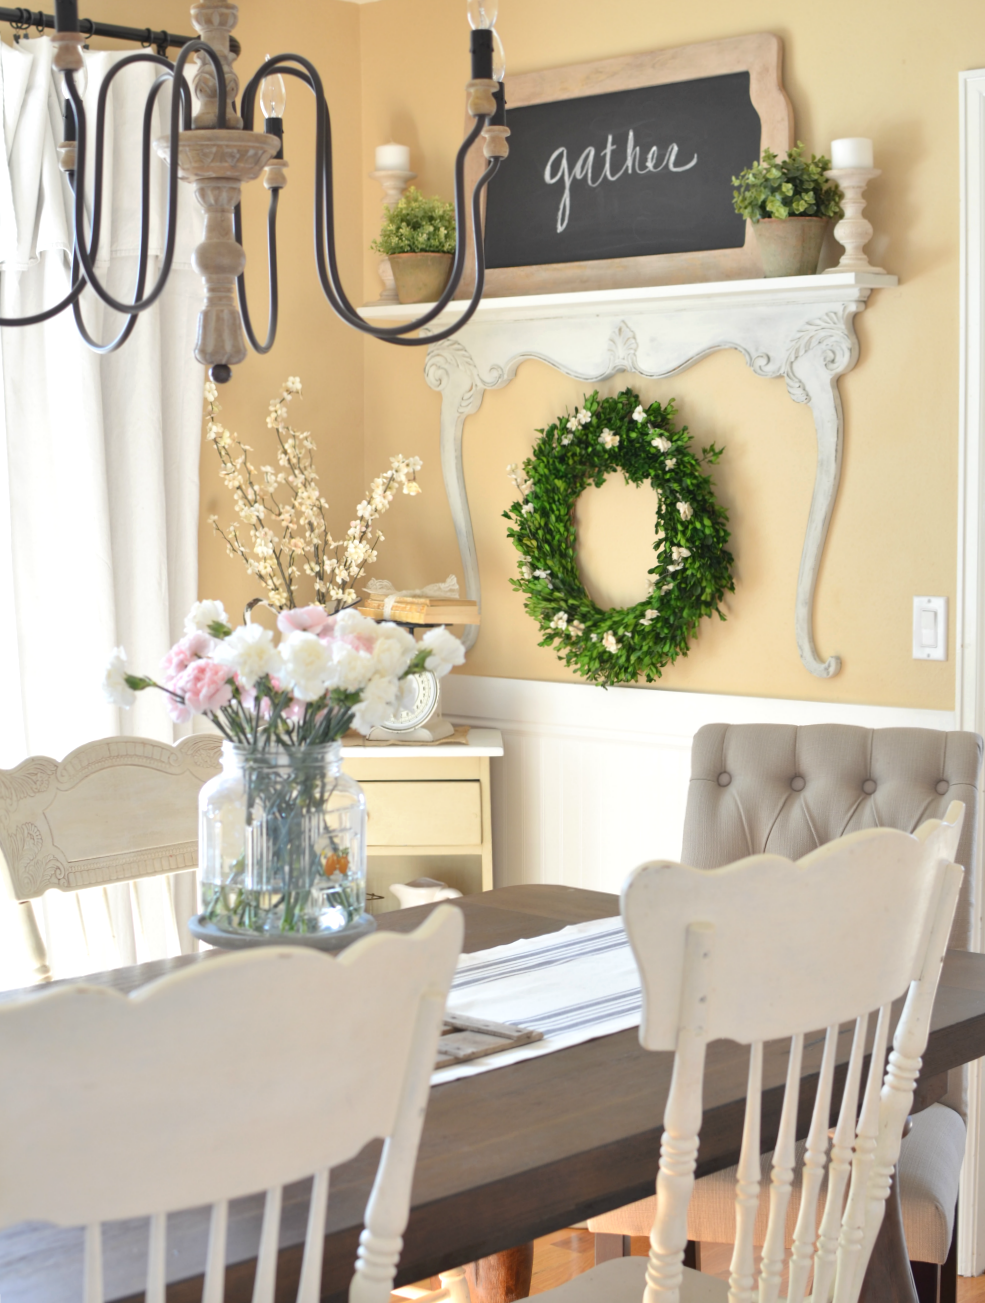 Modern farmhouse dining room with DIY shelf made with a vintage dresser harp. Vintage farmhouse style decor.